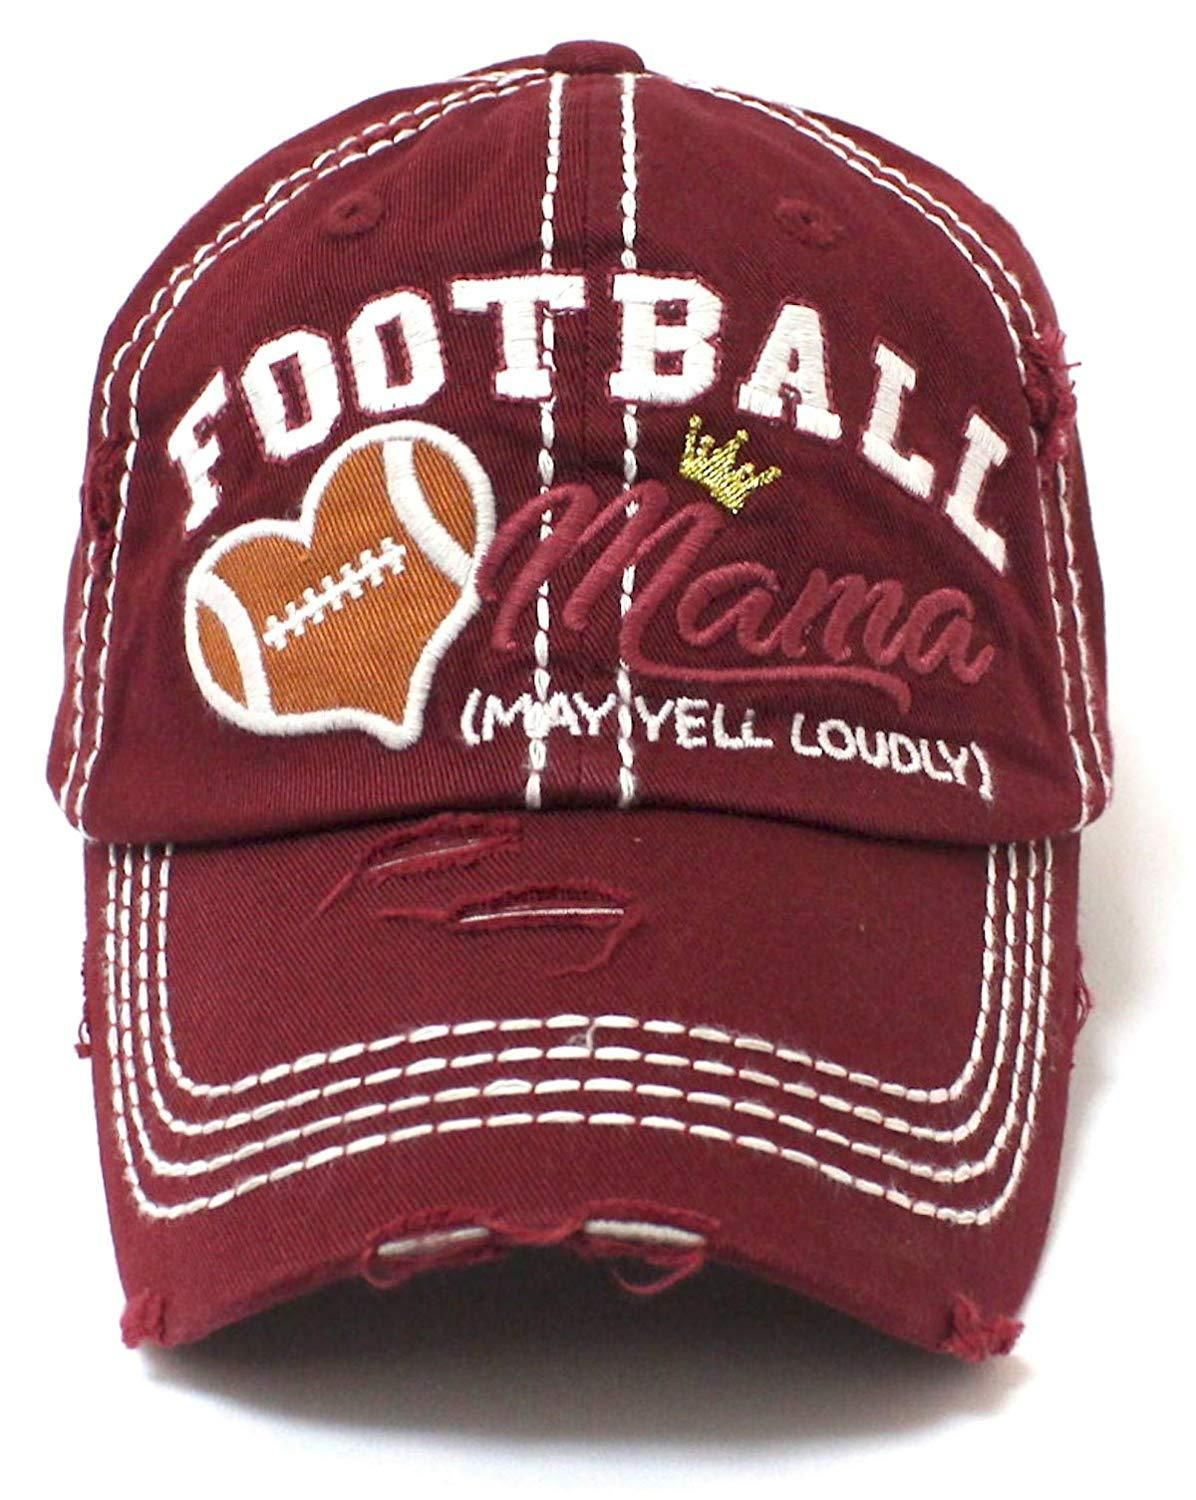 CAPS 'N VINTAGE Burgundy Football Mama Cheer Queen Hat #queenshats